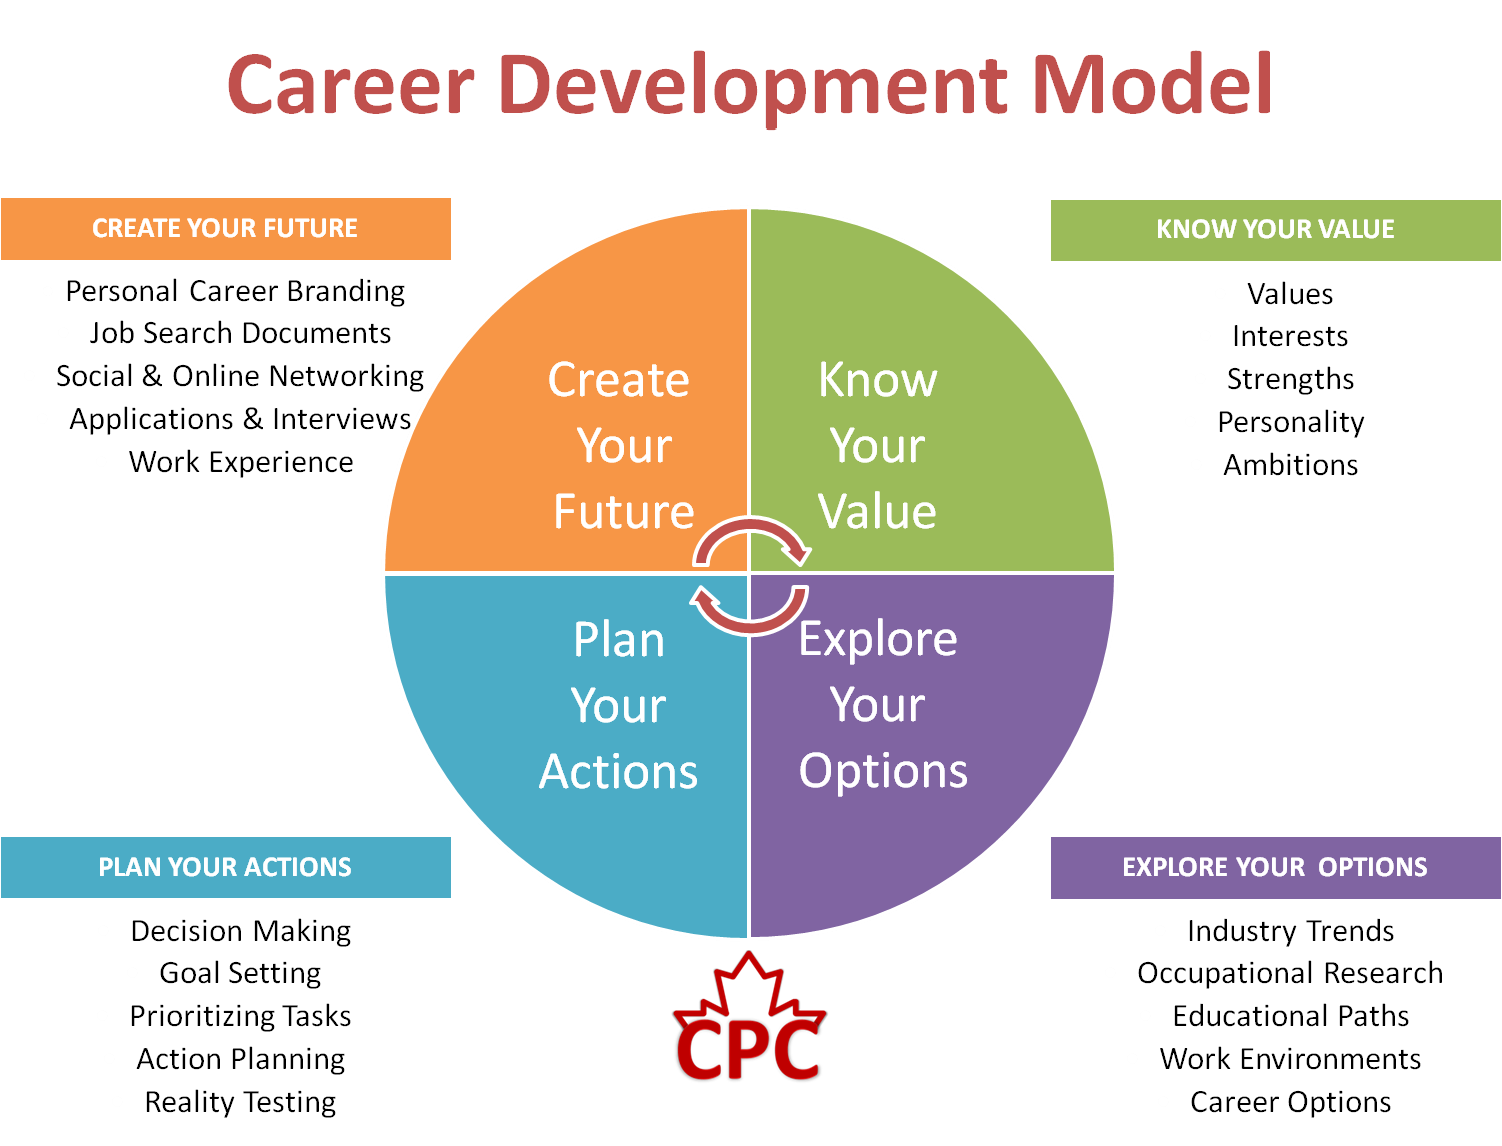 career development model dodgen co careerguidance dodgenco career development model dodgen co careerguidance dodgenco